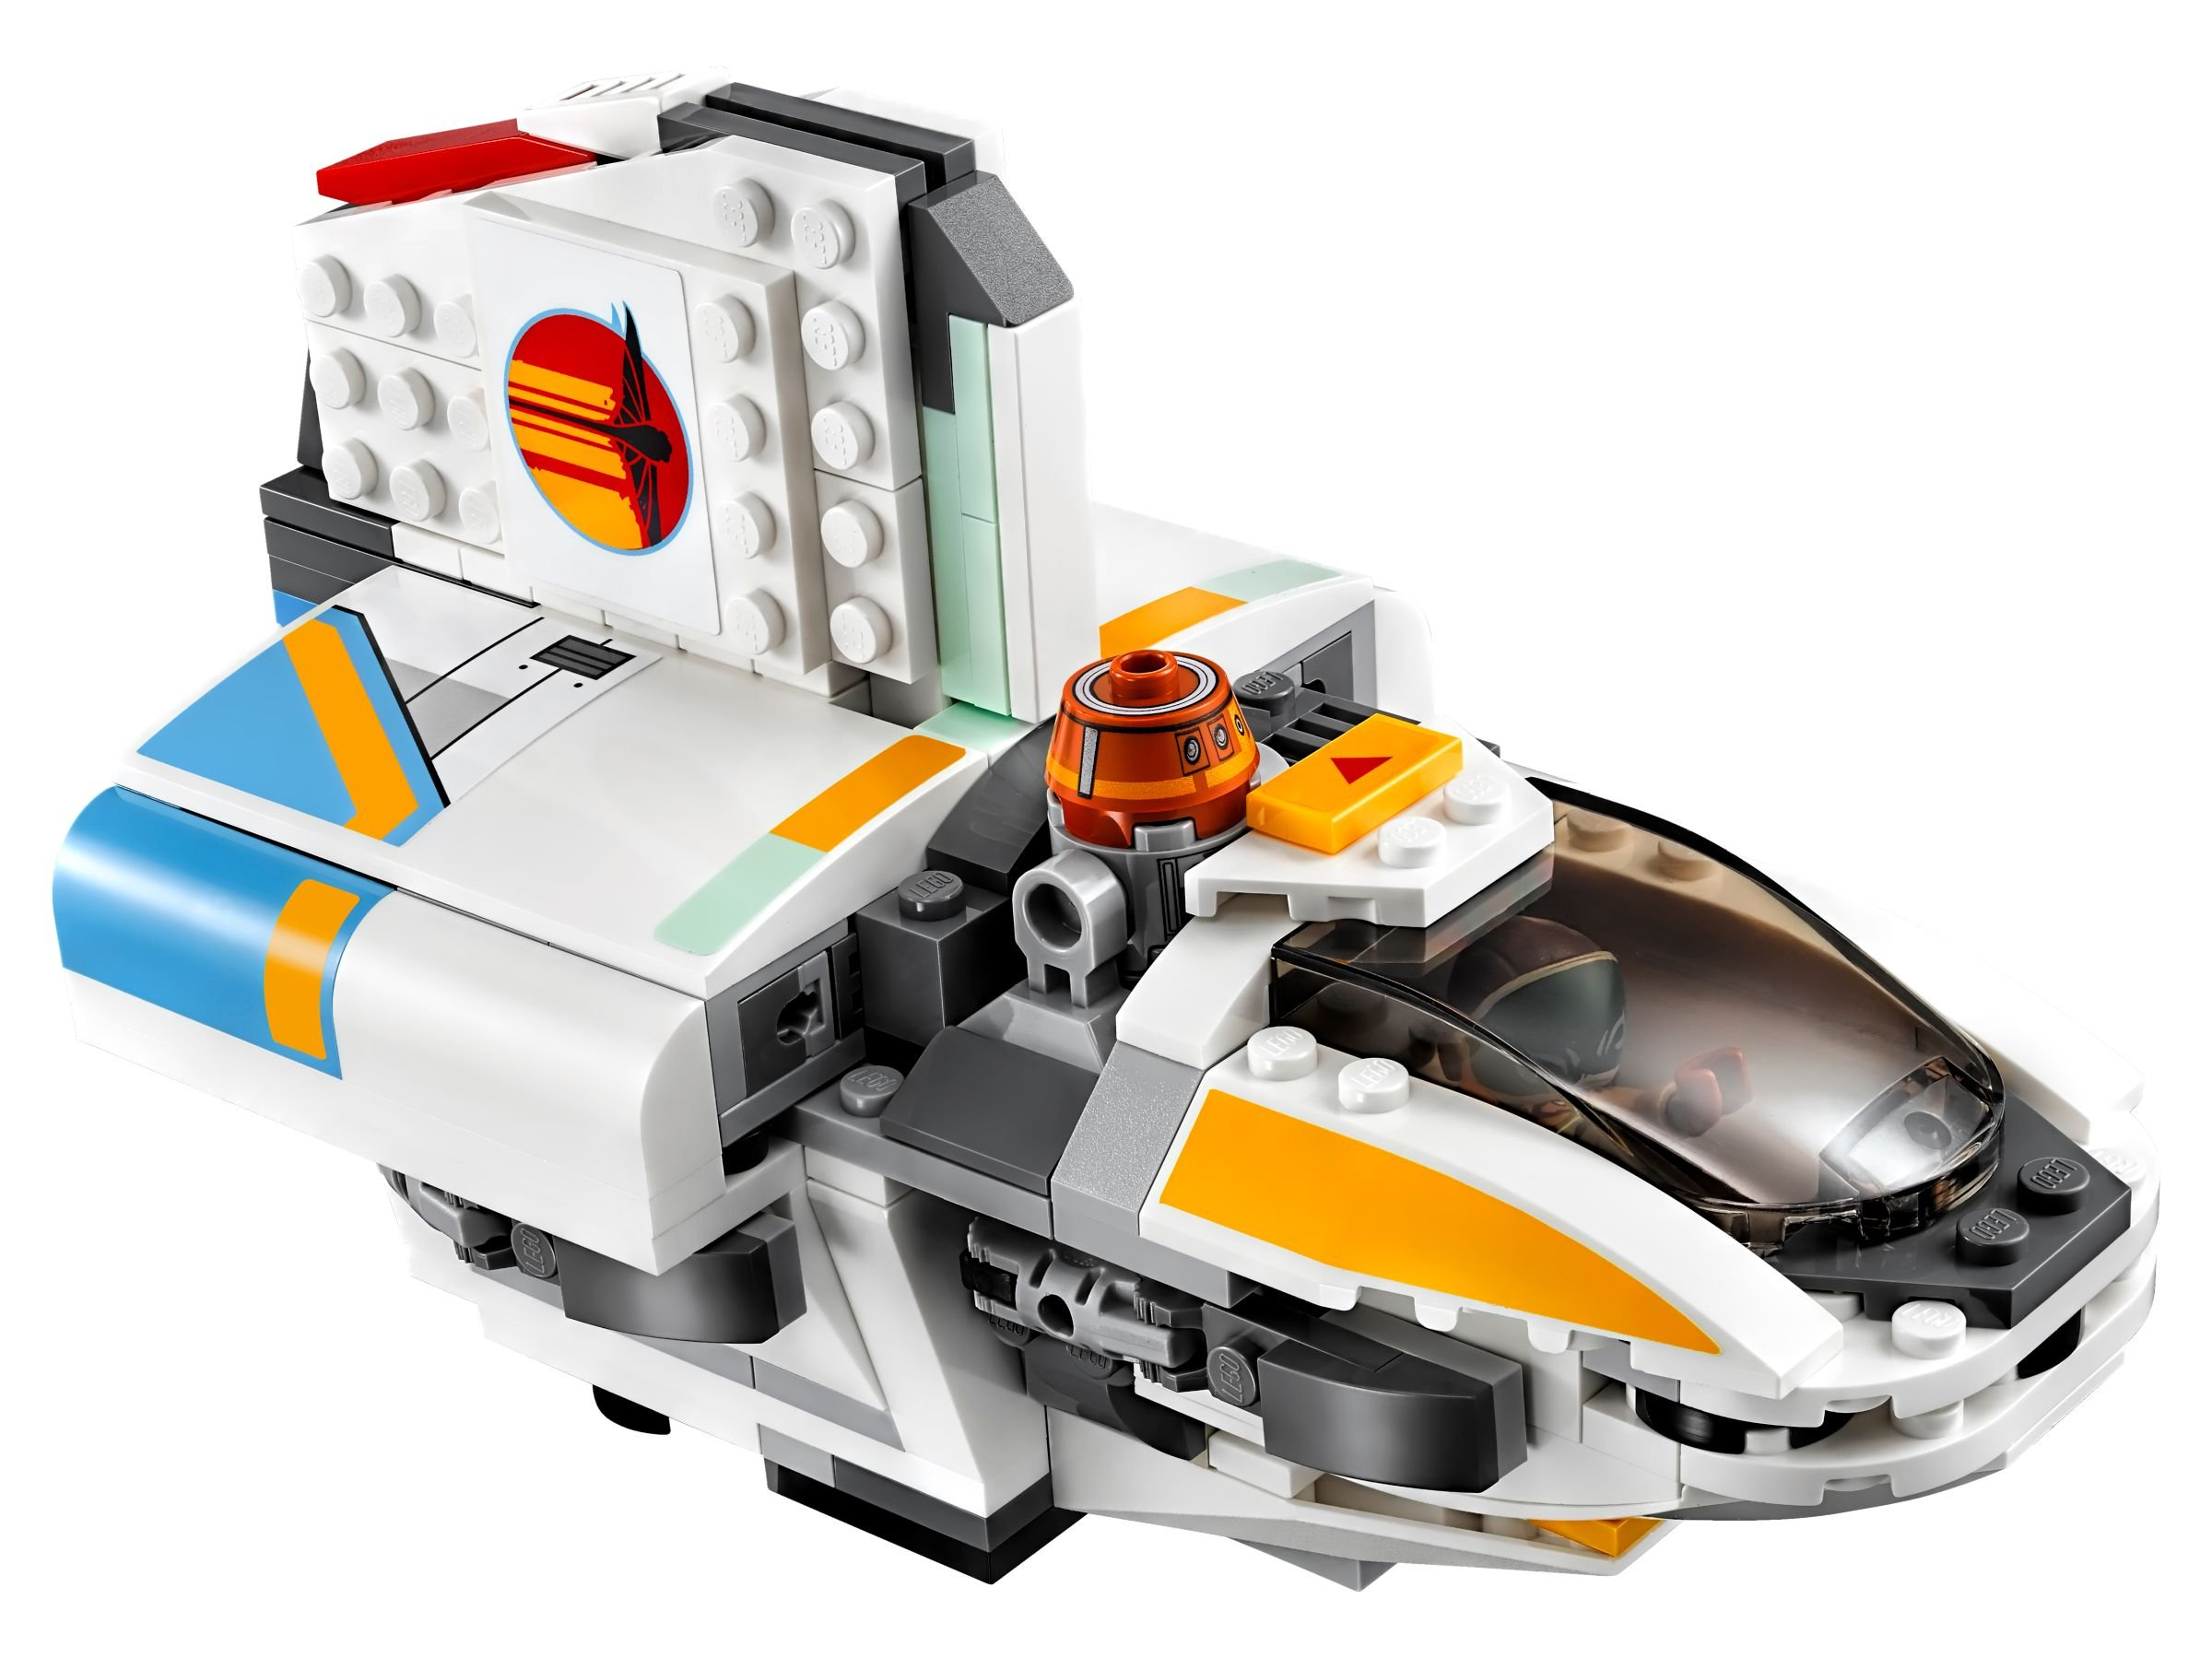 LEGO Star Wars 75170 The Phantom LEGO_75170_alt2.jpg